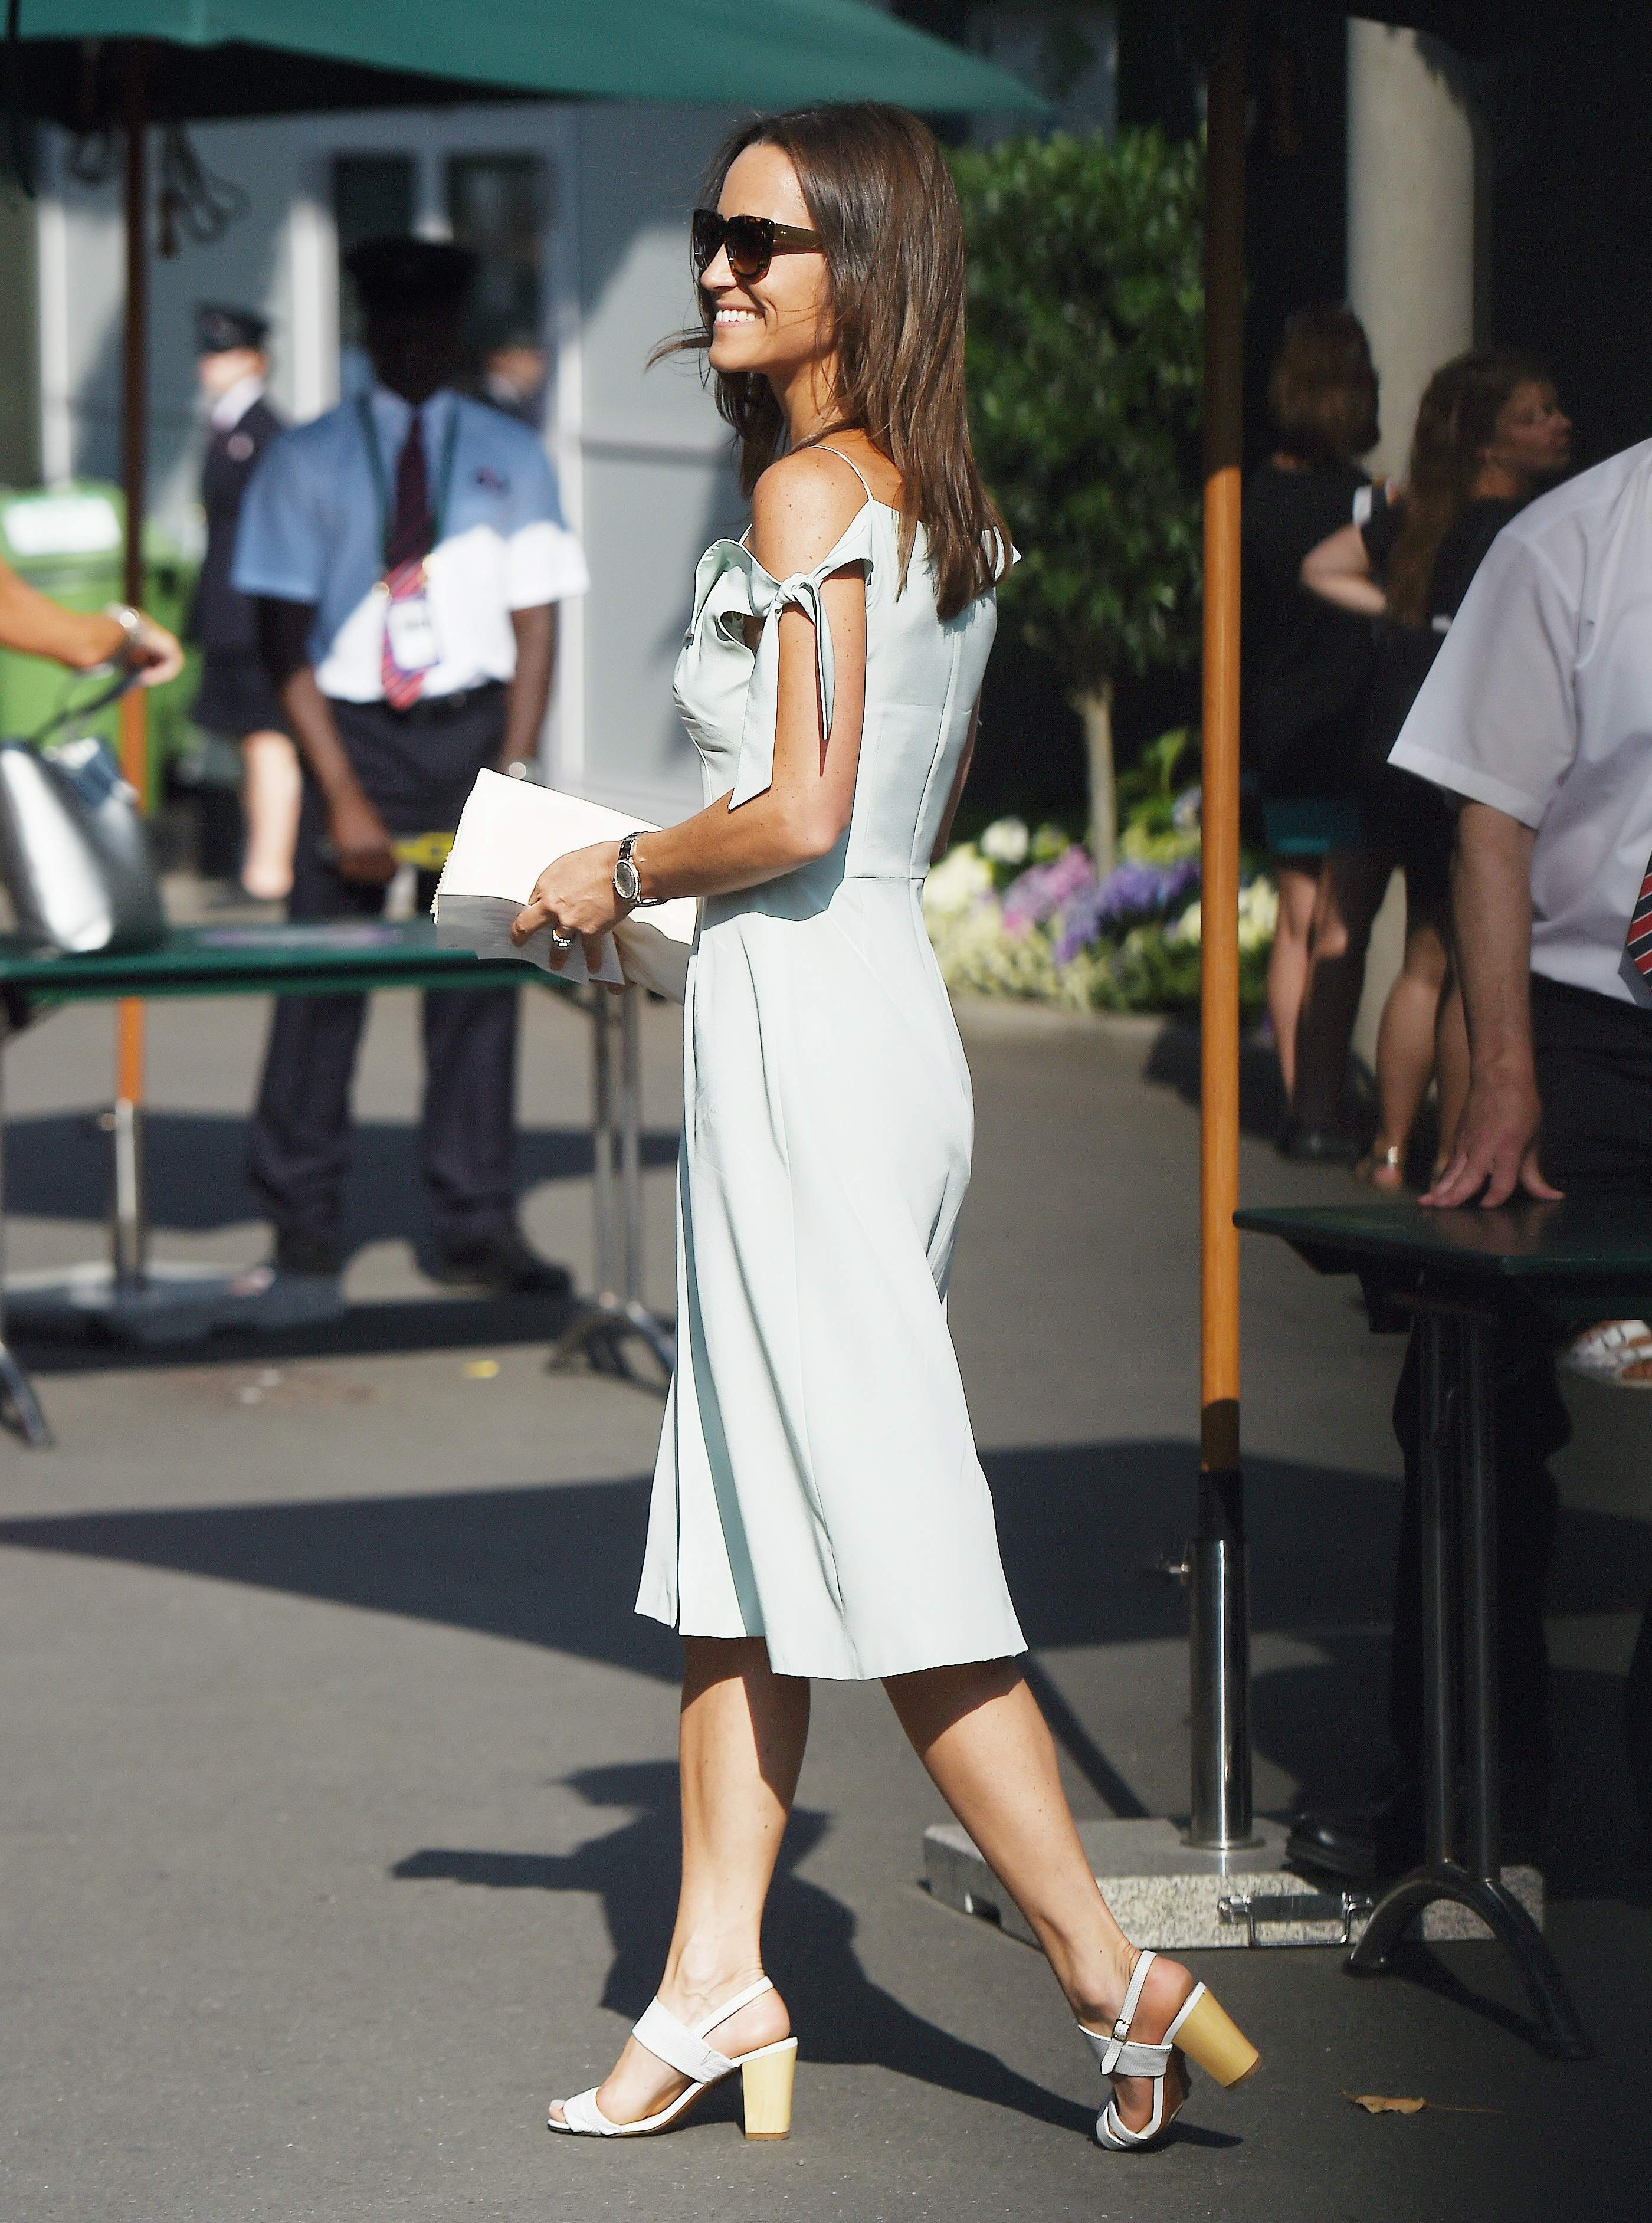 Feet Pippa Middleton nudes (16 foto and video), Topless, Cleavage, Boobs, butt 2015